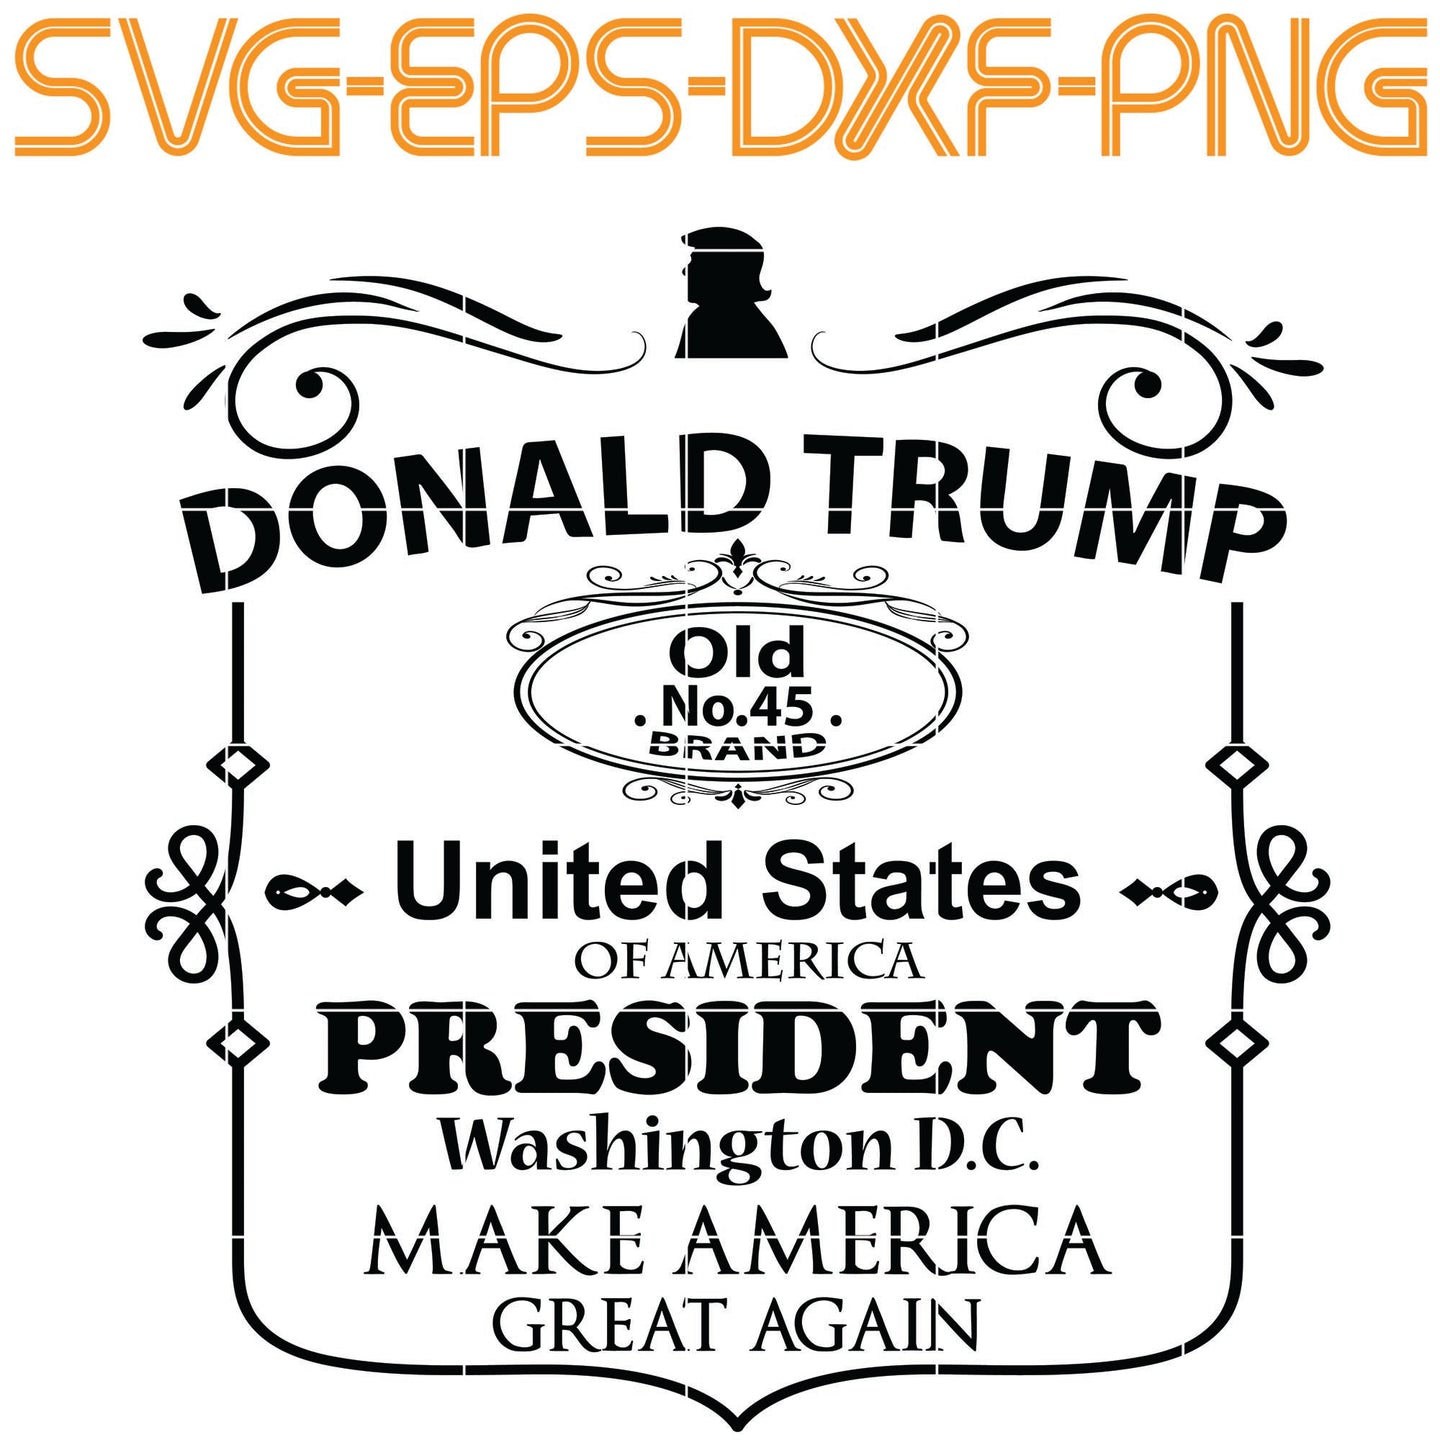 Donald Trump Old No 45 brand United States of america fresident SVG, EPS, DXF, PNG , Digital Download